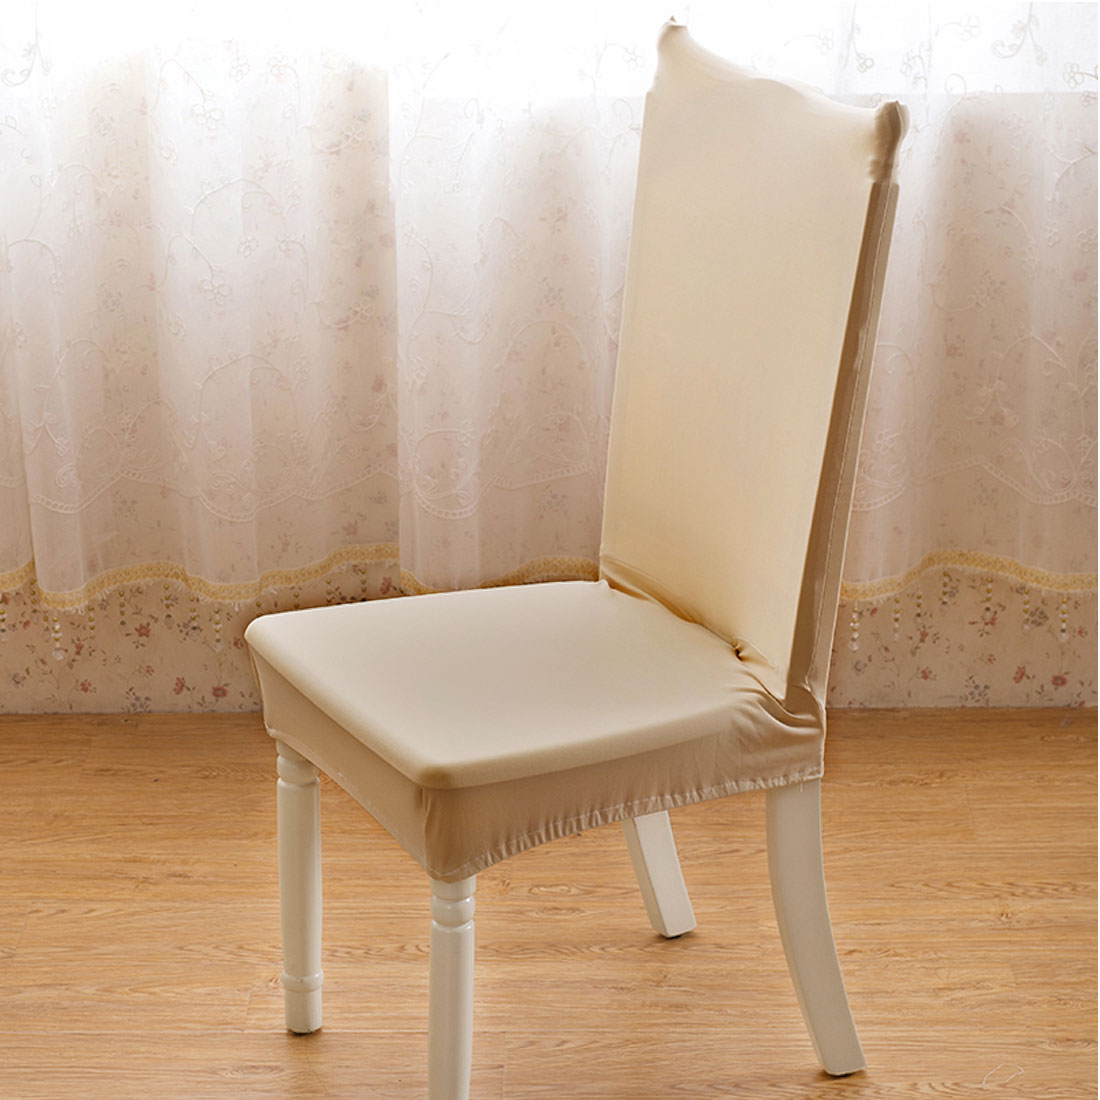 Piccocasa Stretch Dining Room Chair Cover for Shorty Parson Chair Beige